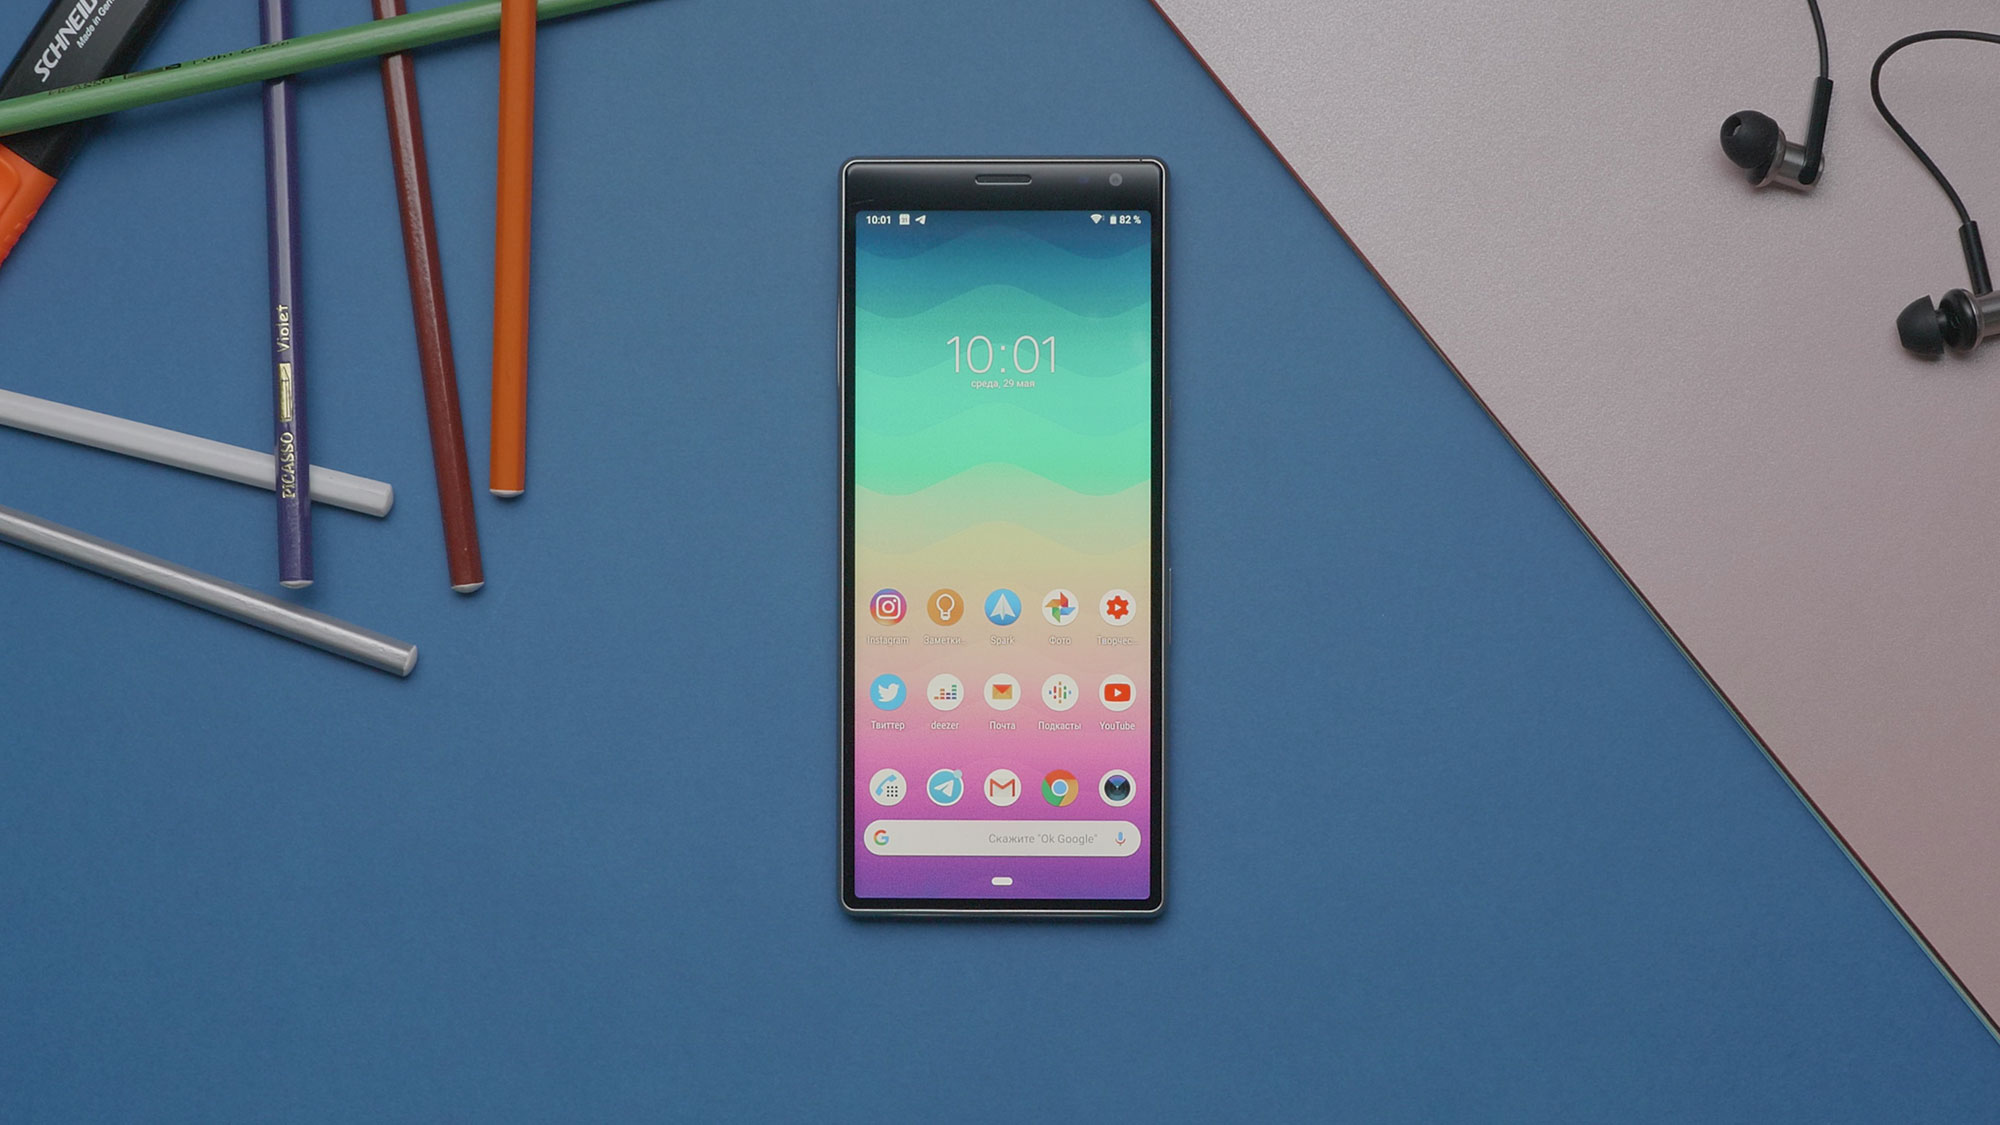 sony xperia 10 plus display